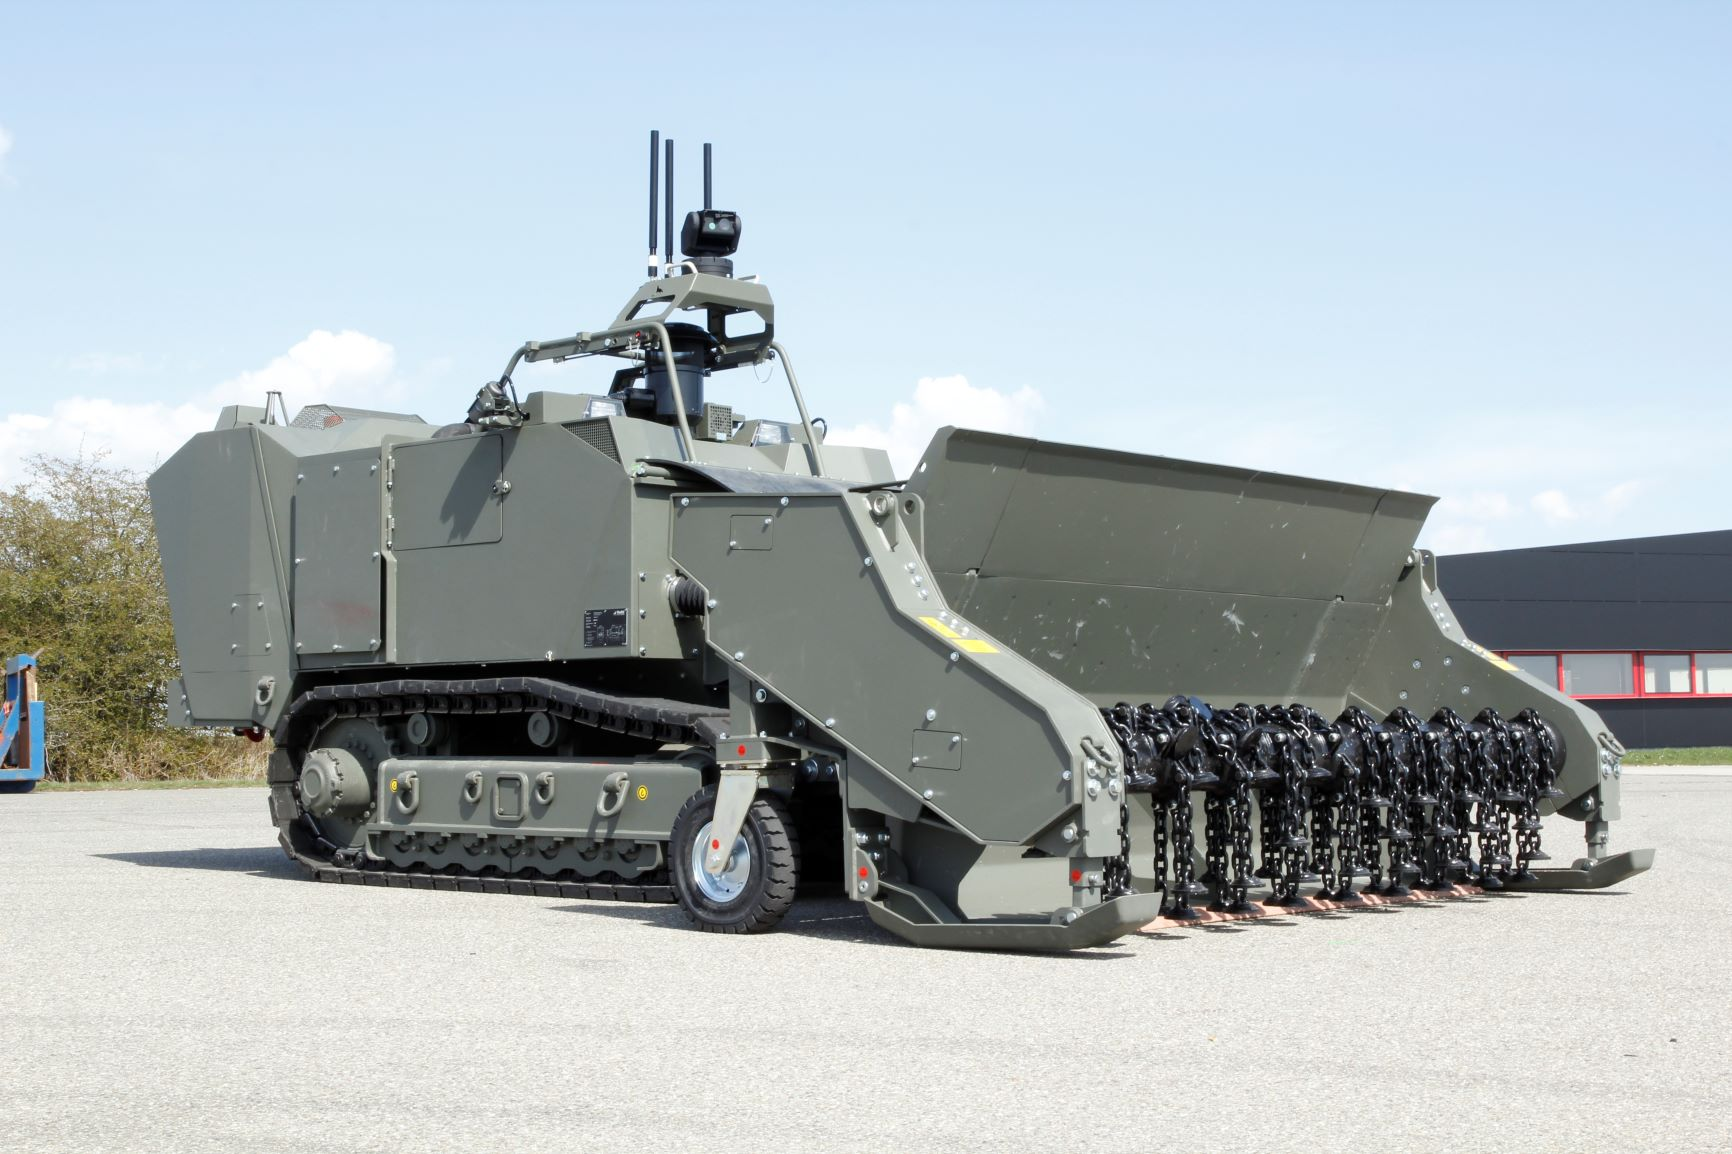 The MW240 is a purpose-built remotely controlled platform used for the safe and effective clearance of explosive devices including landmines, IEDs and cluster munitions.